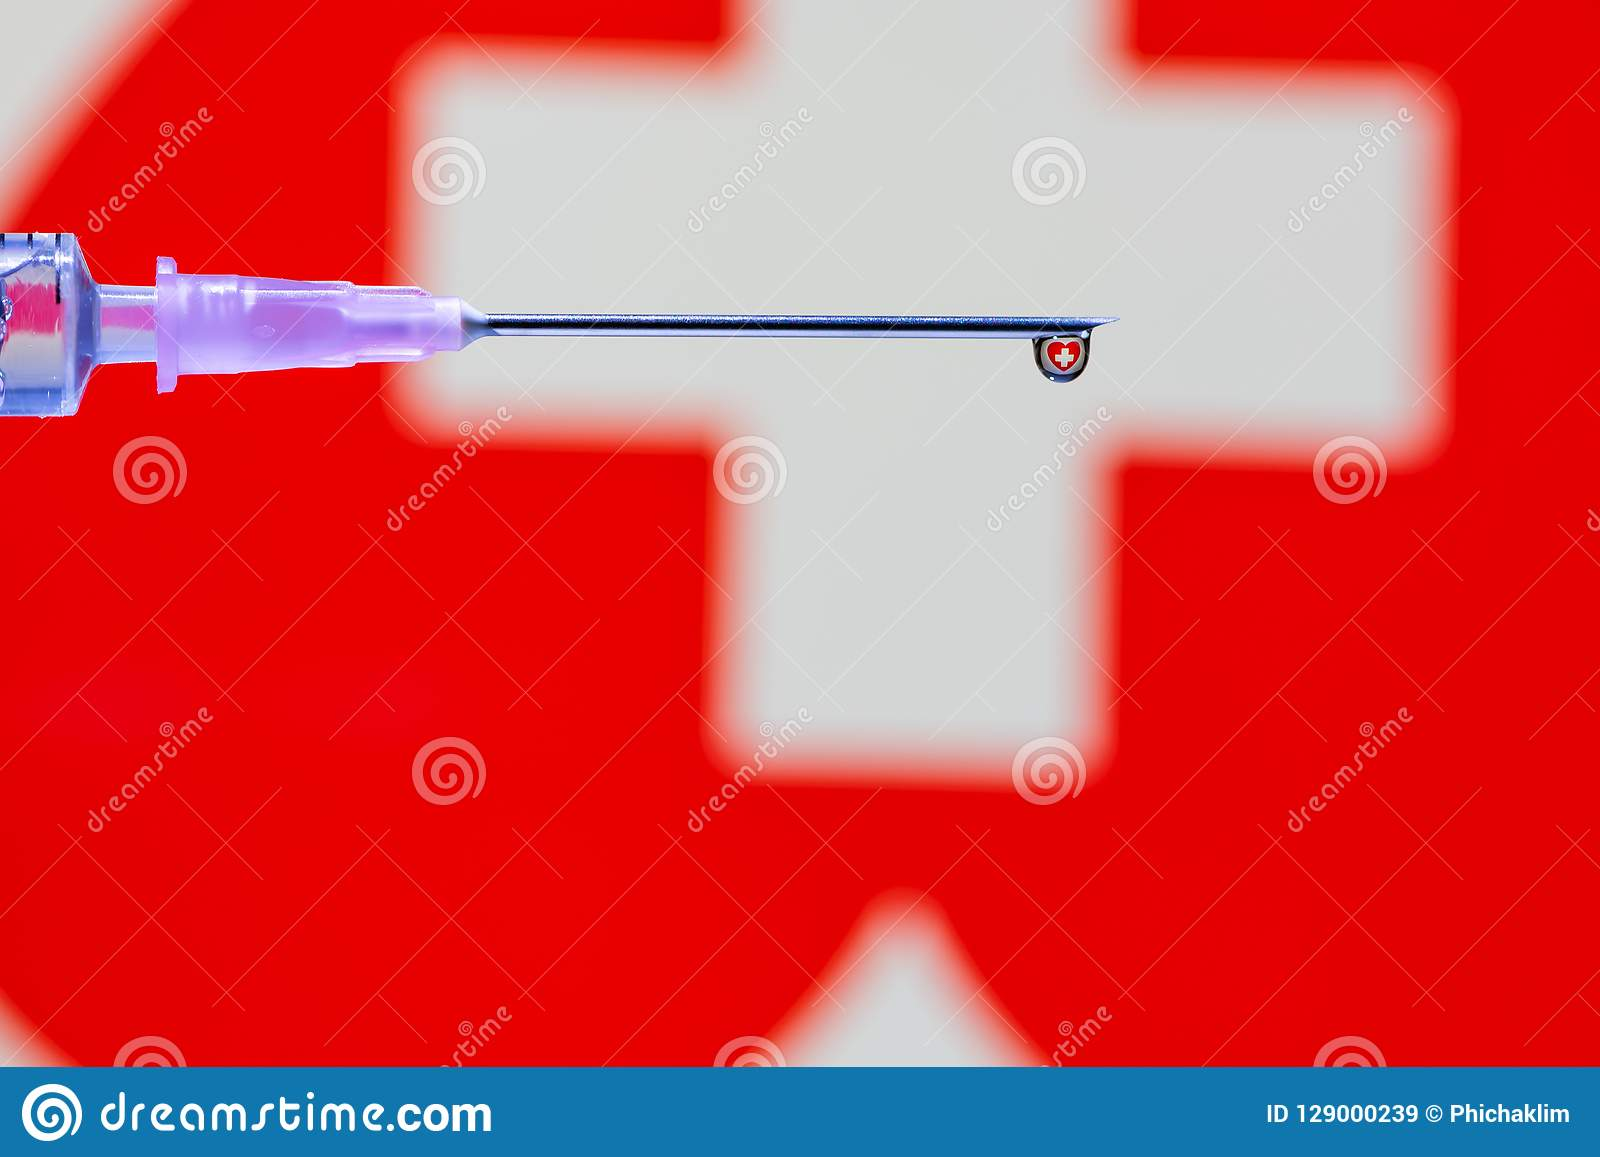 A droplet of vaccine at the tip of the needle and syringe